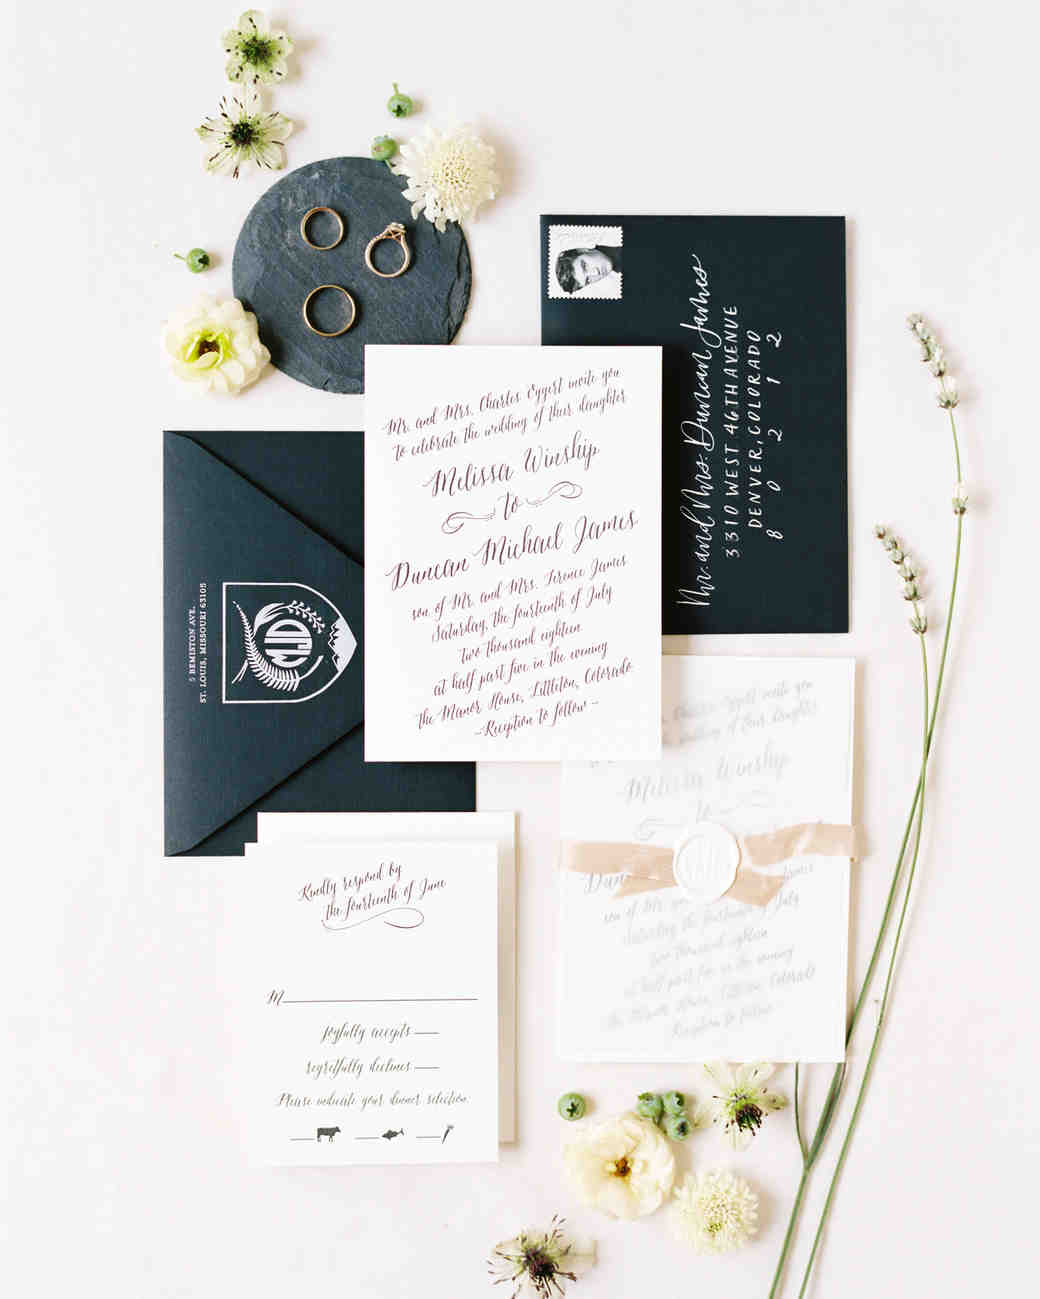 The Best Ways To Customize Your Wedding Invitations